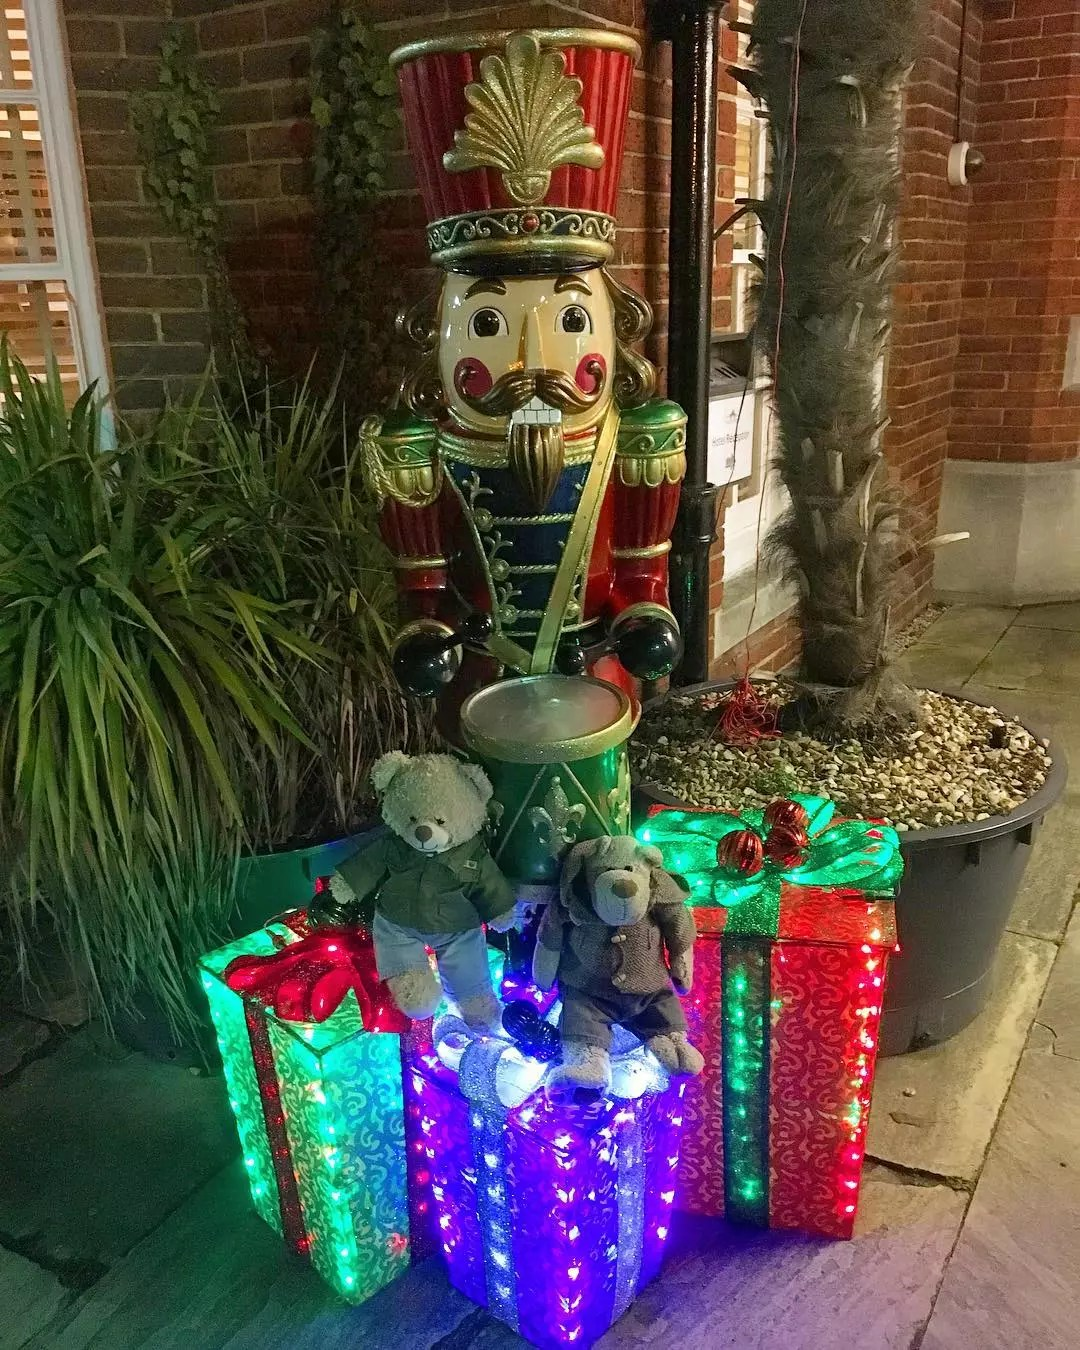 DIY presents created with a wooden frame and mesh material glow with lights outside in front of a large nutcracker. Photo by Instagram user @tedandalfiebears.